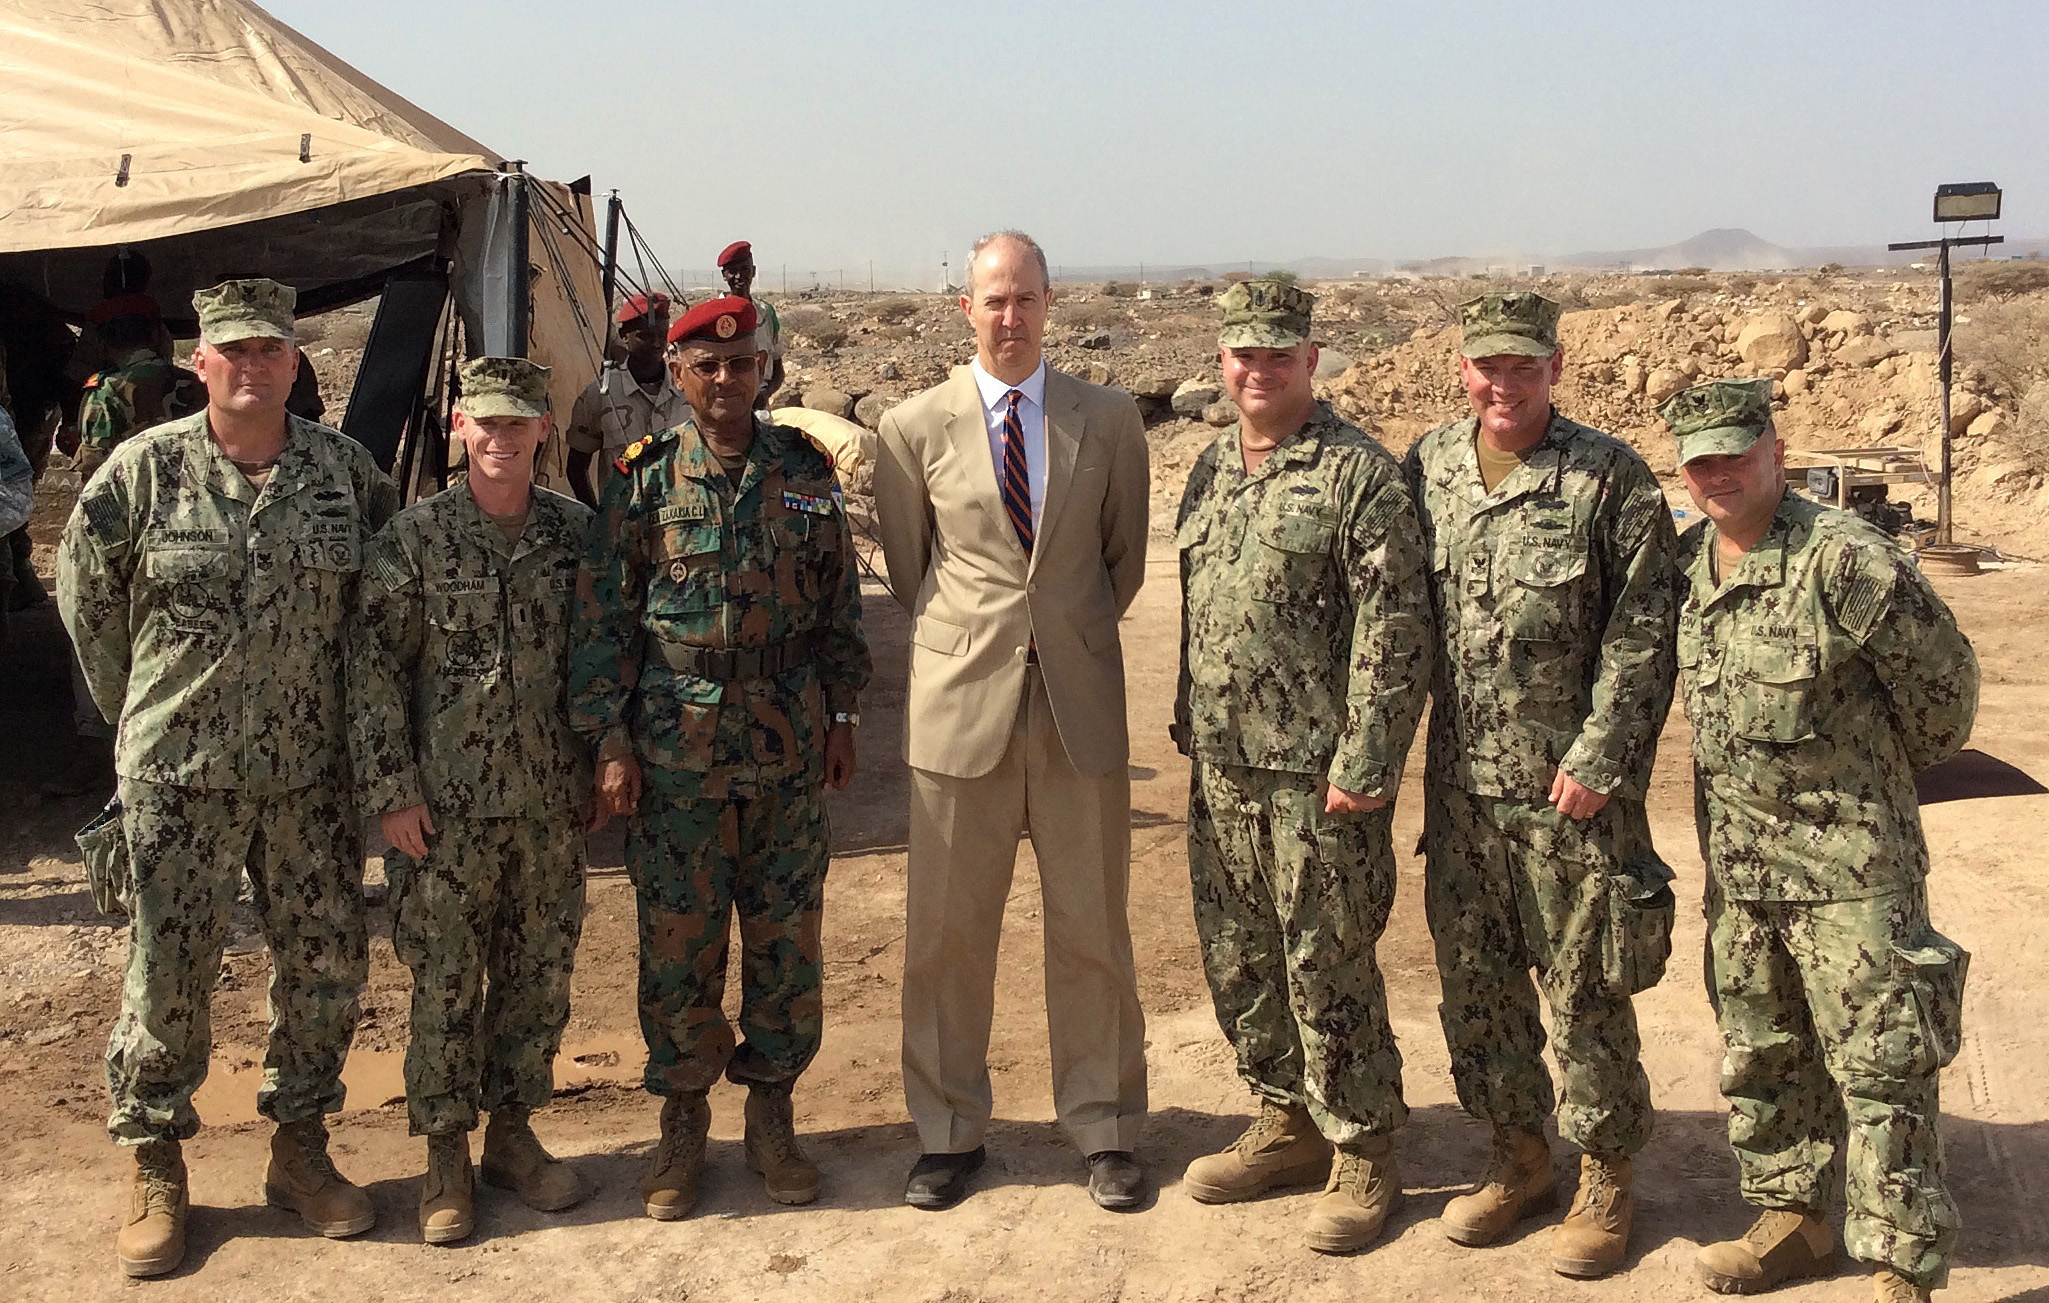 Camp Lemonnier, Djibouti (May 14, 2015) U.S. Navy Seabees of Naval Mobile Construction Battalion (NMCB) 14 pose with the U.S. Ambassador to Djibouti, Tom Kelly and Chief of Djibouti Defense Forces Maj. Gen. Zakaria Cheikh Ibrahim at an awards ceremony for the U.S. Army-led Counter Terrorism Logistics and Engineering training evolution. NMCB-14 Detachment HOA is assigned to Camp Lemonnier in support of Combined Joint Task Force–Horn of Africa. (U.S. Navy photo by Petty Officer 1st Class Douglas Johnson)